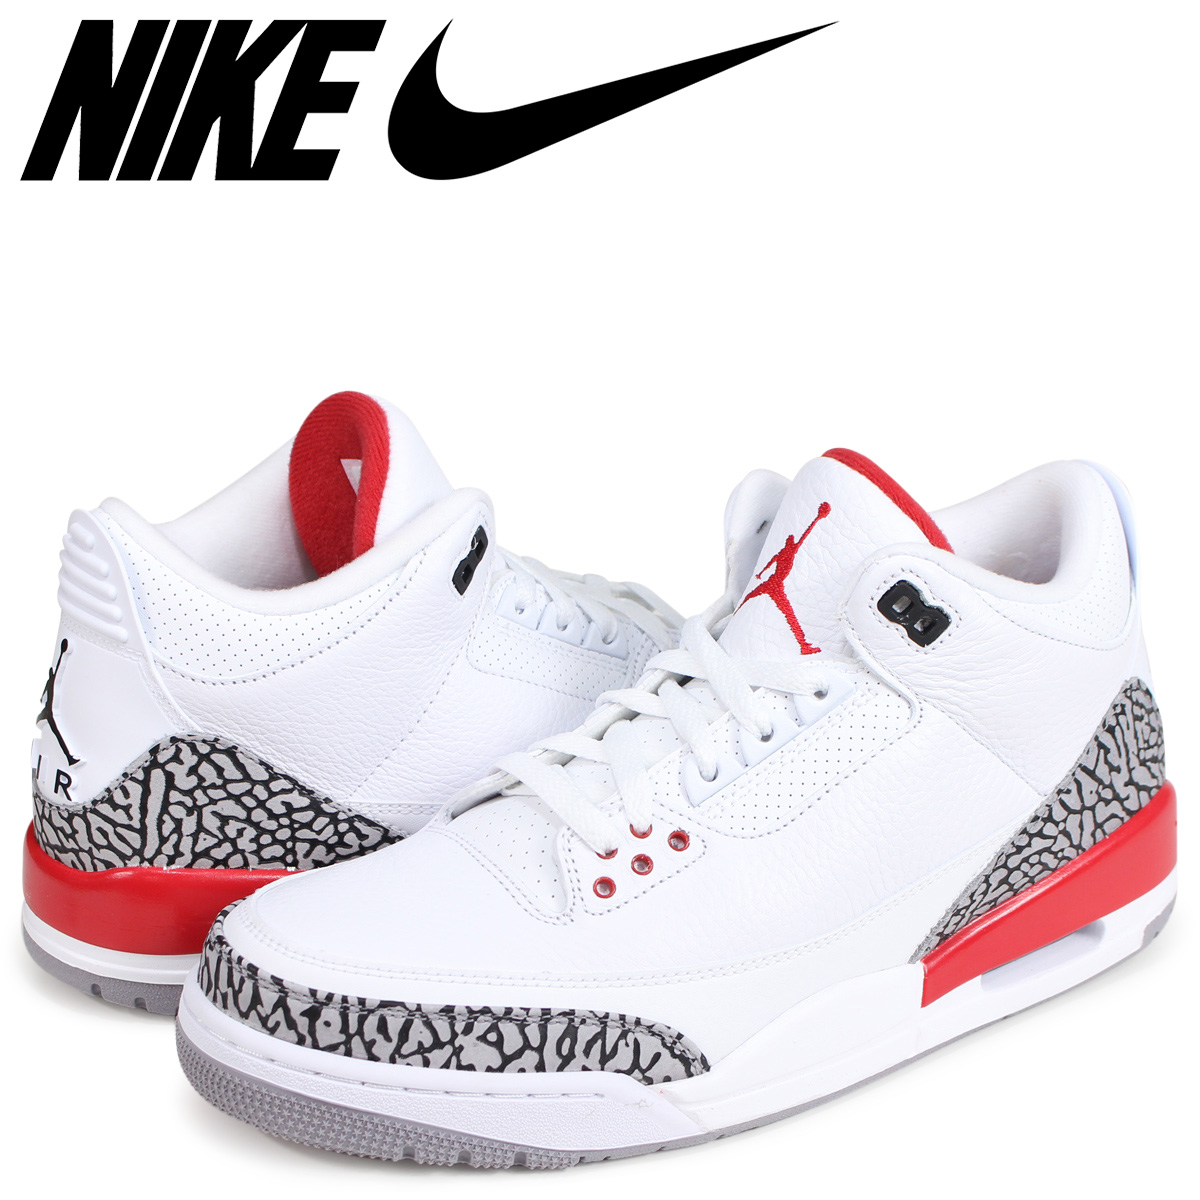 official photos b79a0 47a06 NIKE Nike Air Jordan 3 nostalgic sneakers men AIR JORDAN 3 RETRO KATRINA  136,064-116 white white